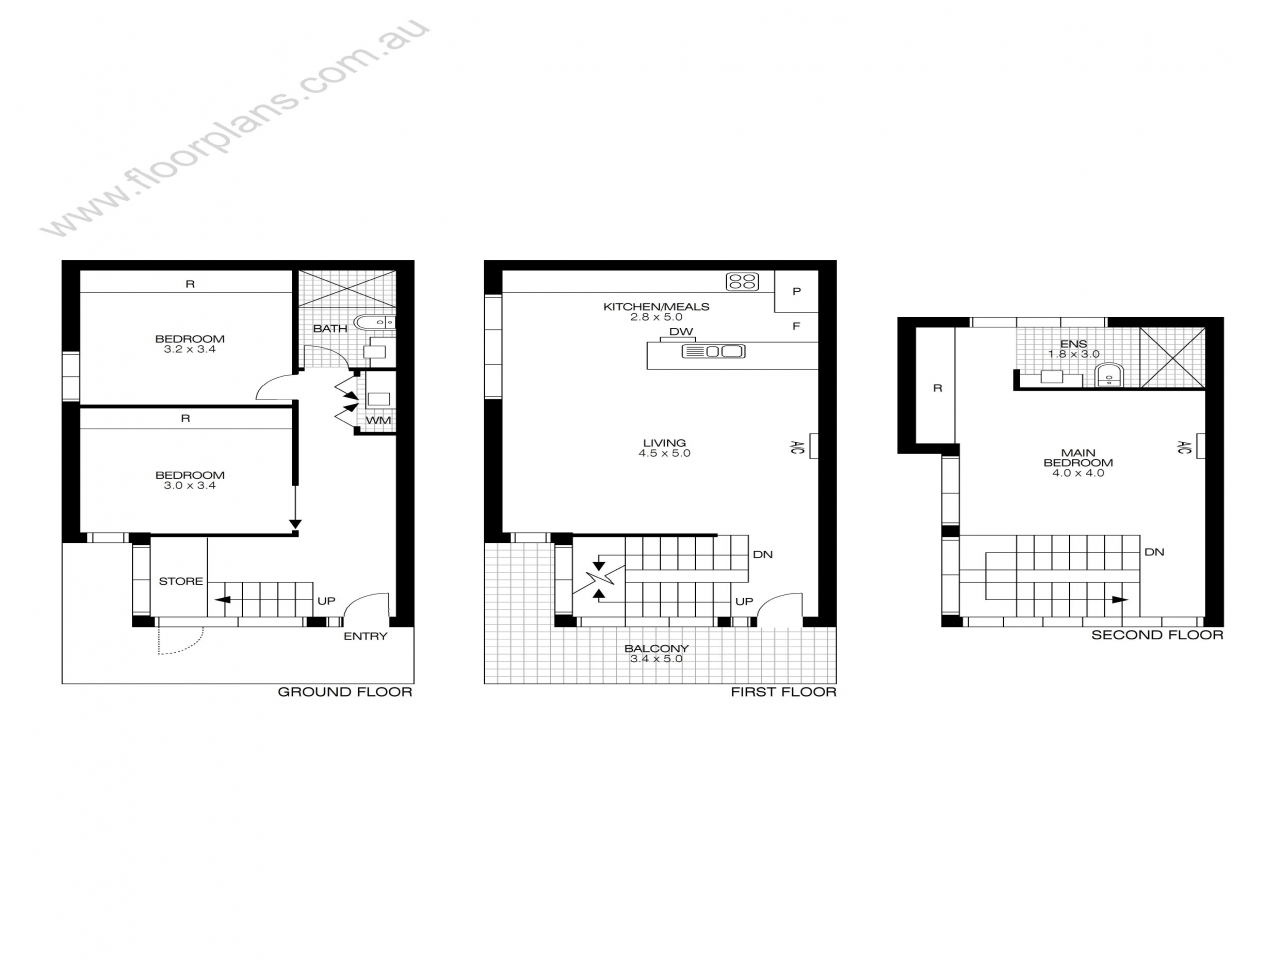 Floor plans with dimensions floorplan dimensions floor for Residential floor plans